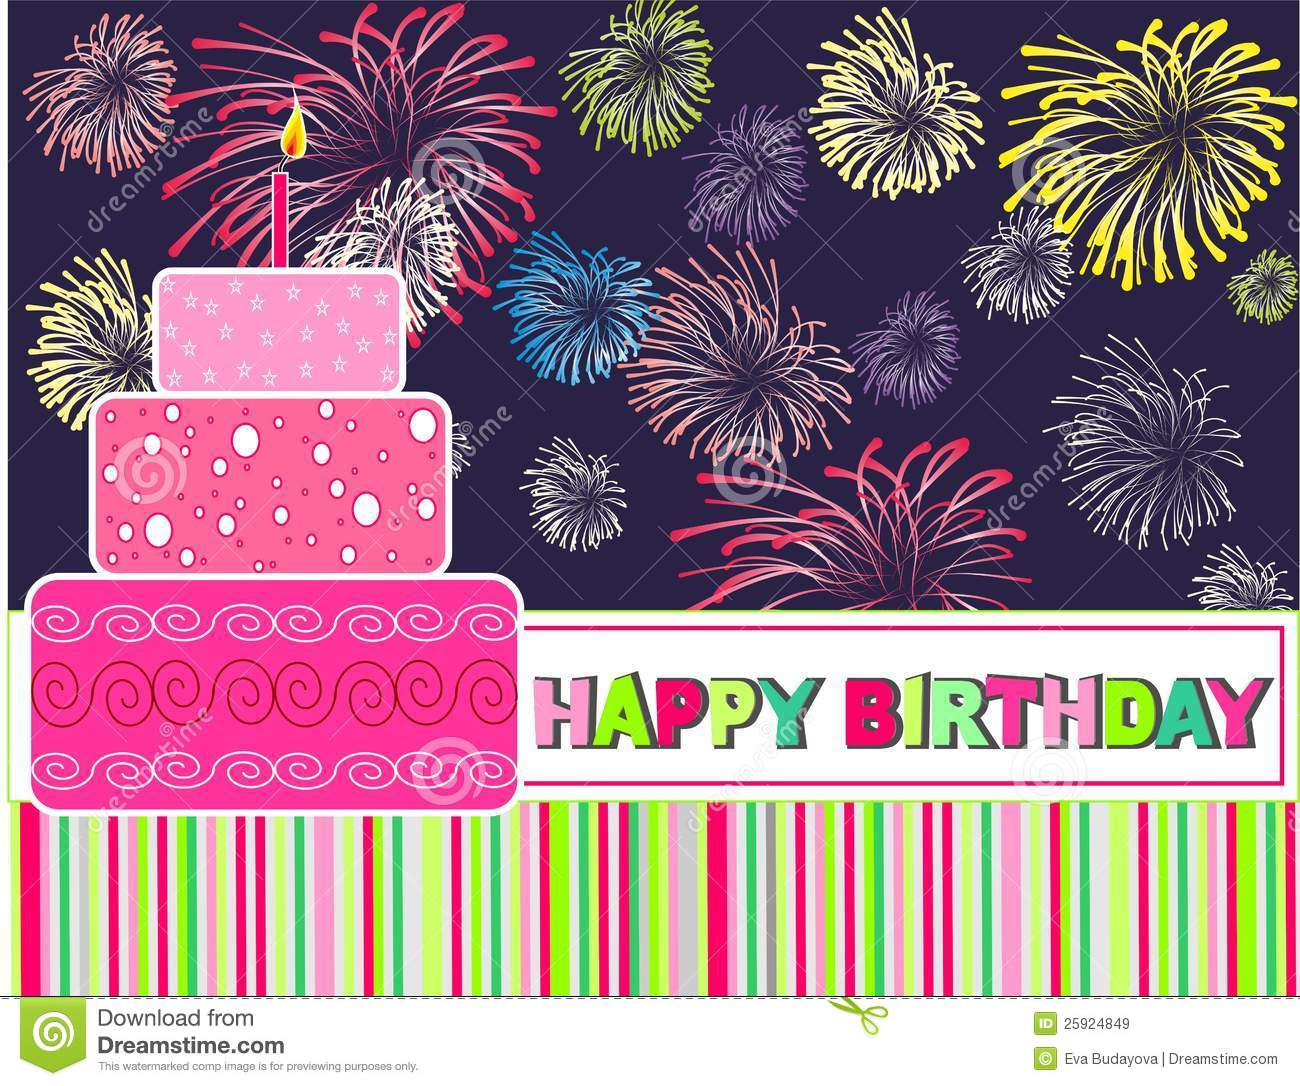 Royalty Free Birthday Images ~ Happy birthday royalty free stock images image